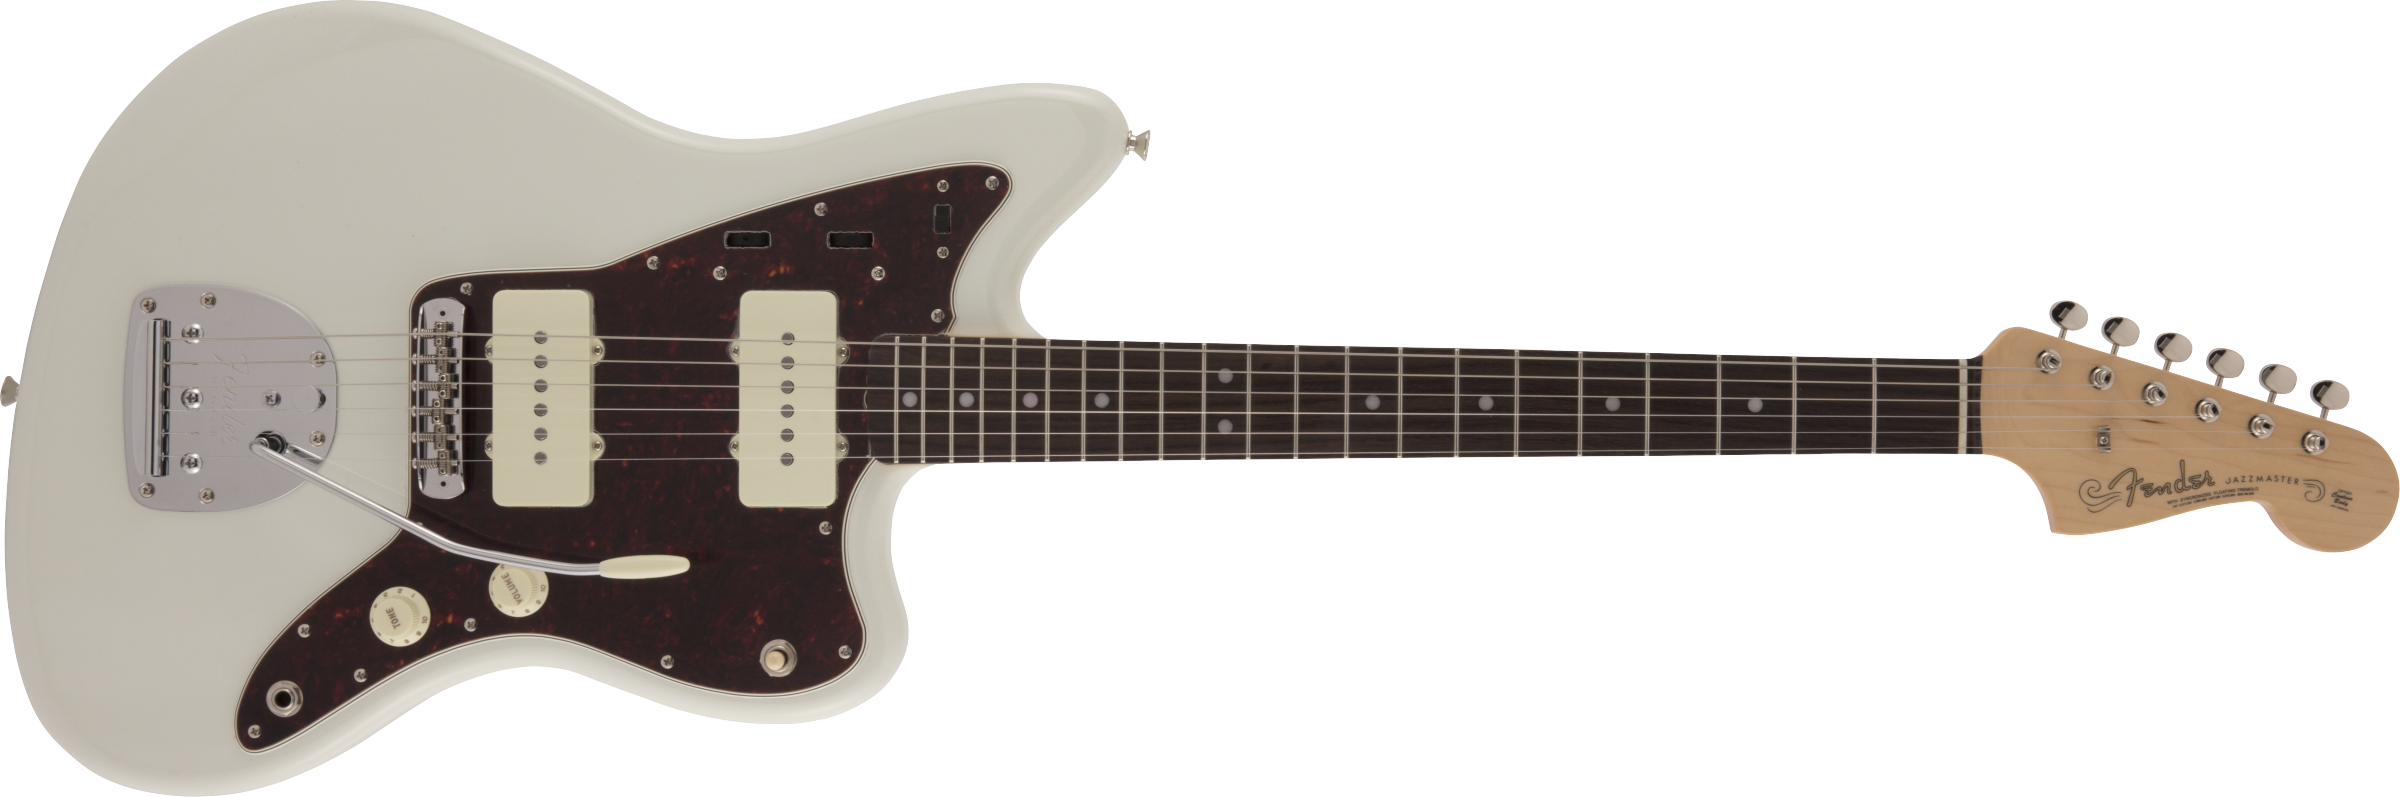 Fender Traditional 60s Jazzmaster, Rosewood Fingerboard, Olympic White